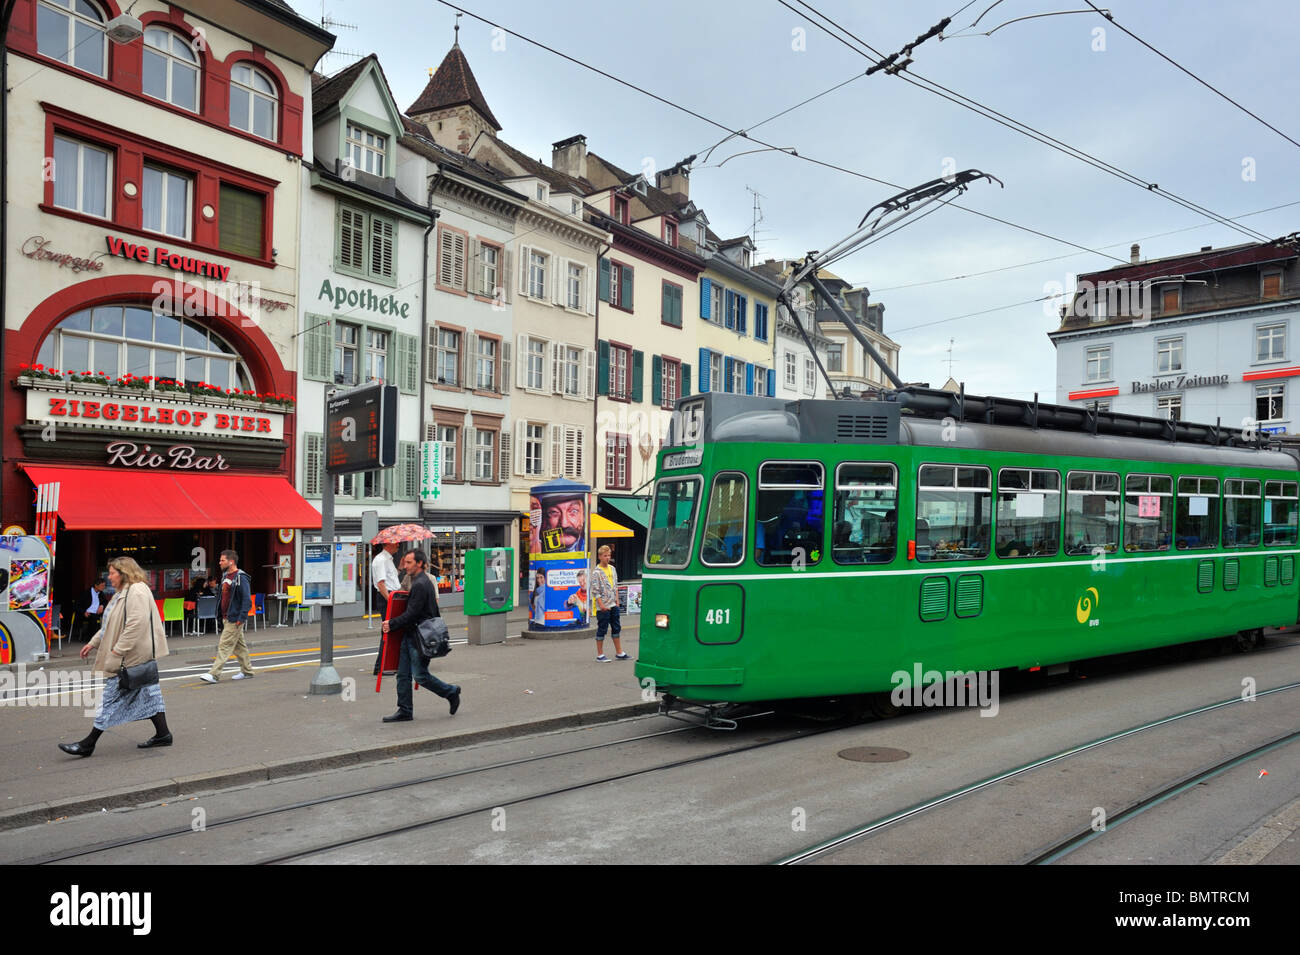 Tram at the Barfuesserplatz  in the city center of Basel - Stock Image